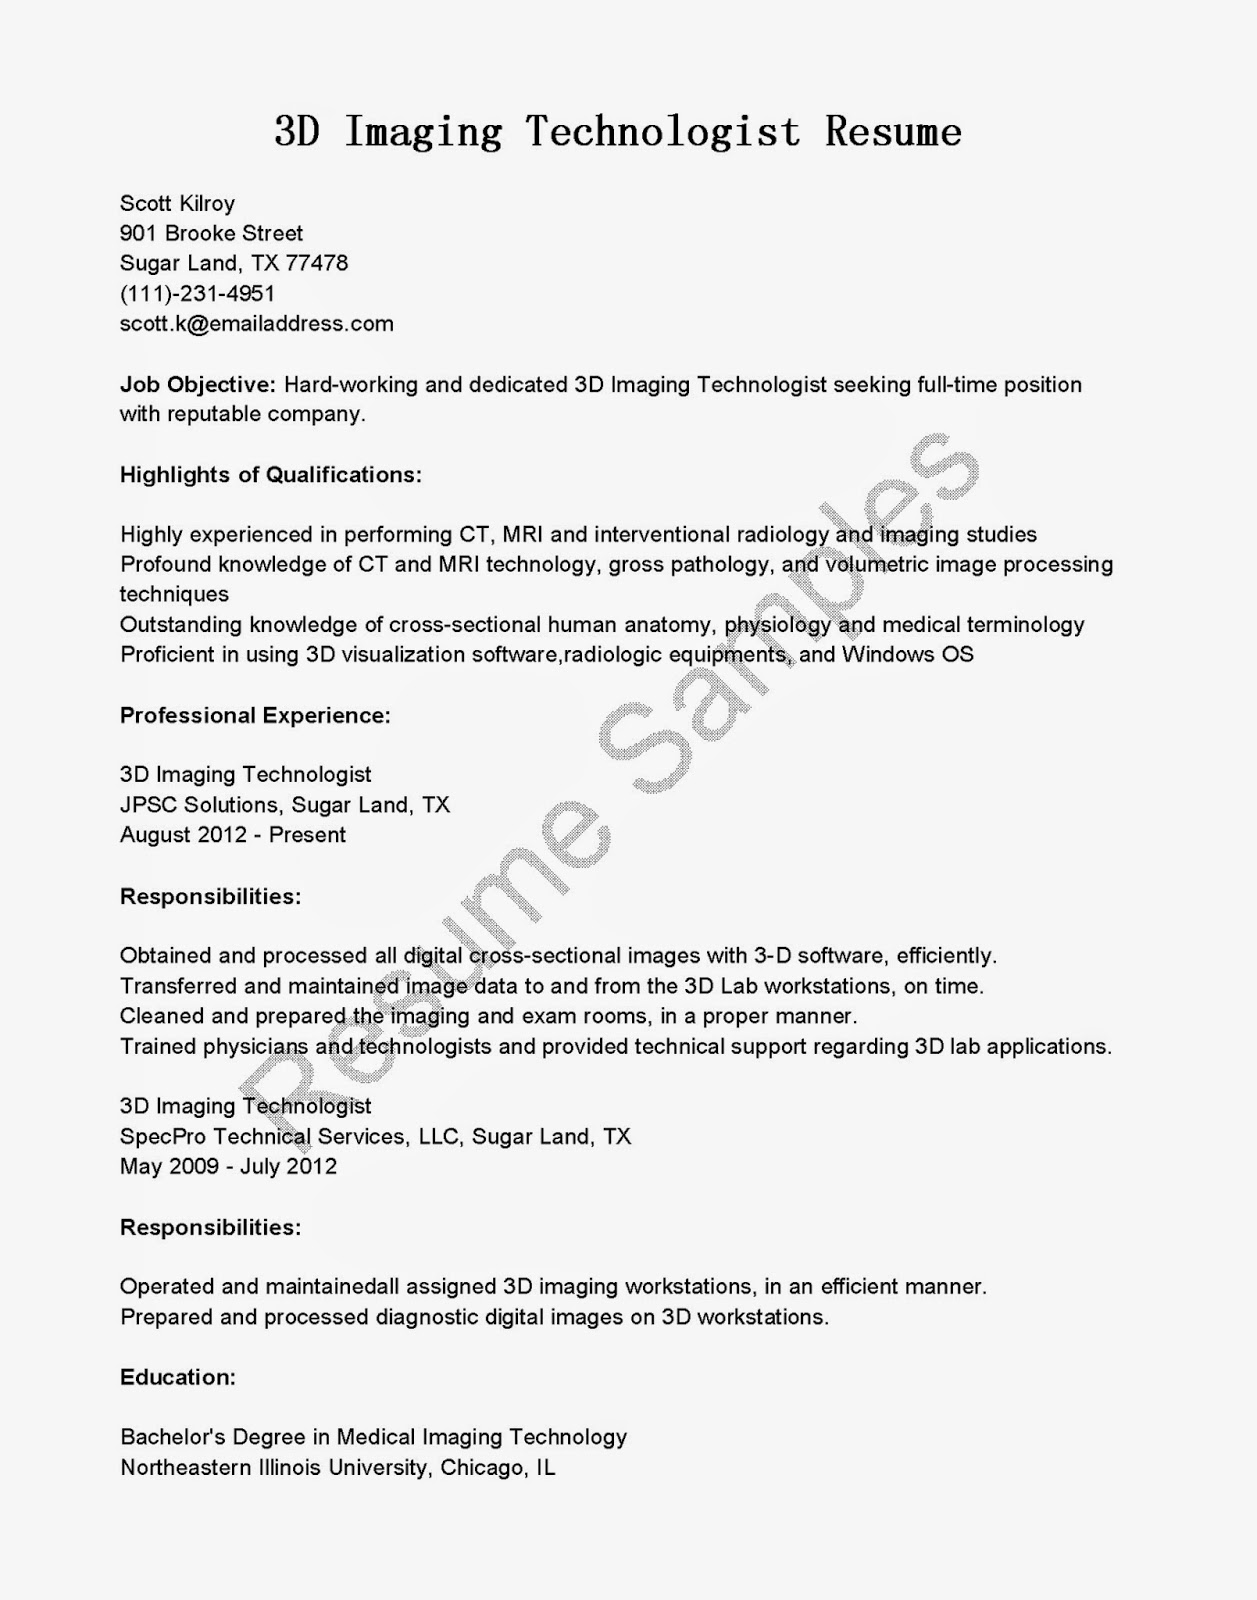 American Beauty Symbolism Essay Putting Clinical Experience Resume  Rad Tech Resume